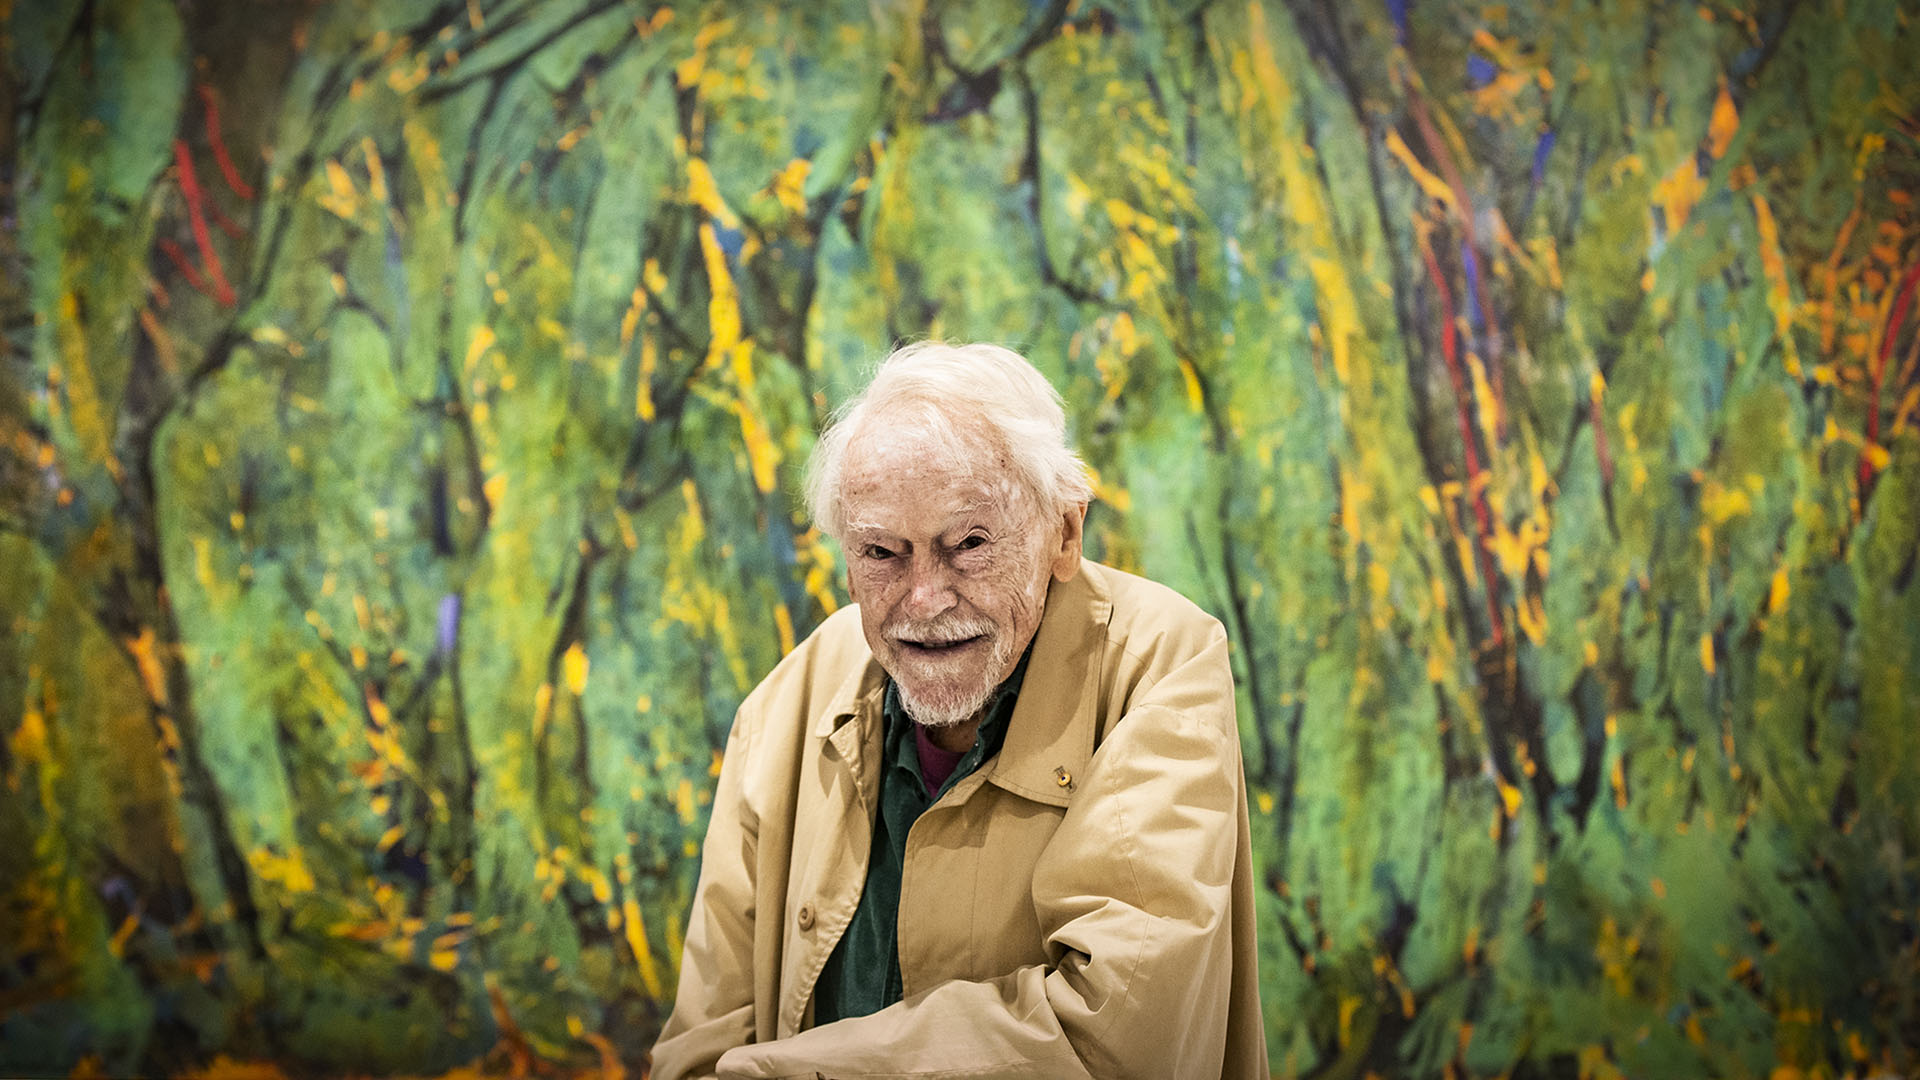 The University of Wollongong is celebrating the life and art of renowned artist Guy Warren AM, with the launch of an exhibition that showcases his work and his immense contribution to Australia's artistic landscape.